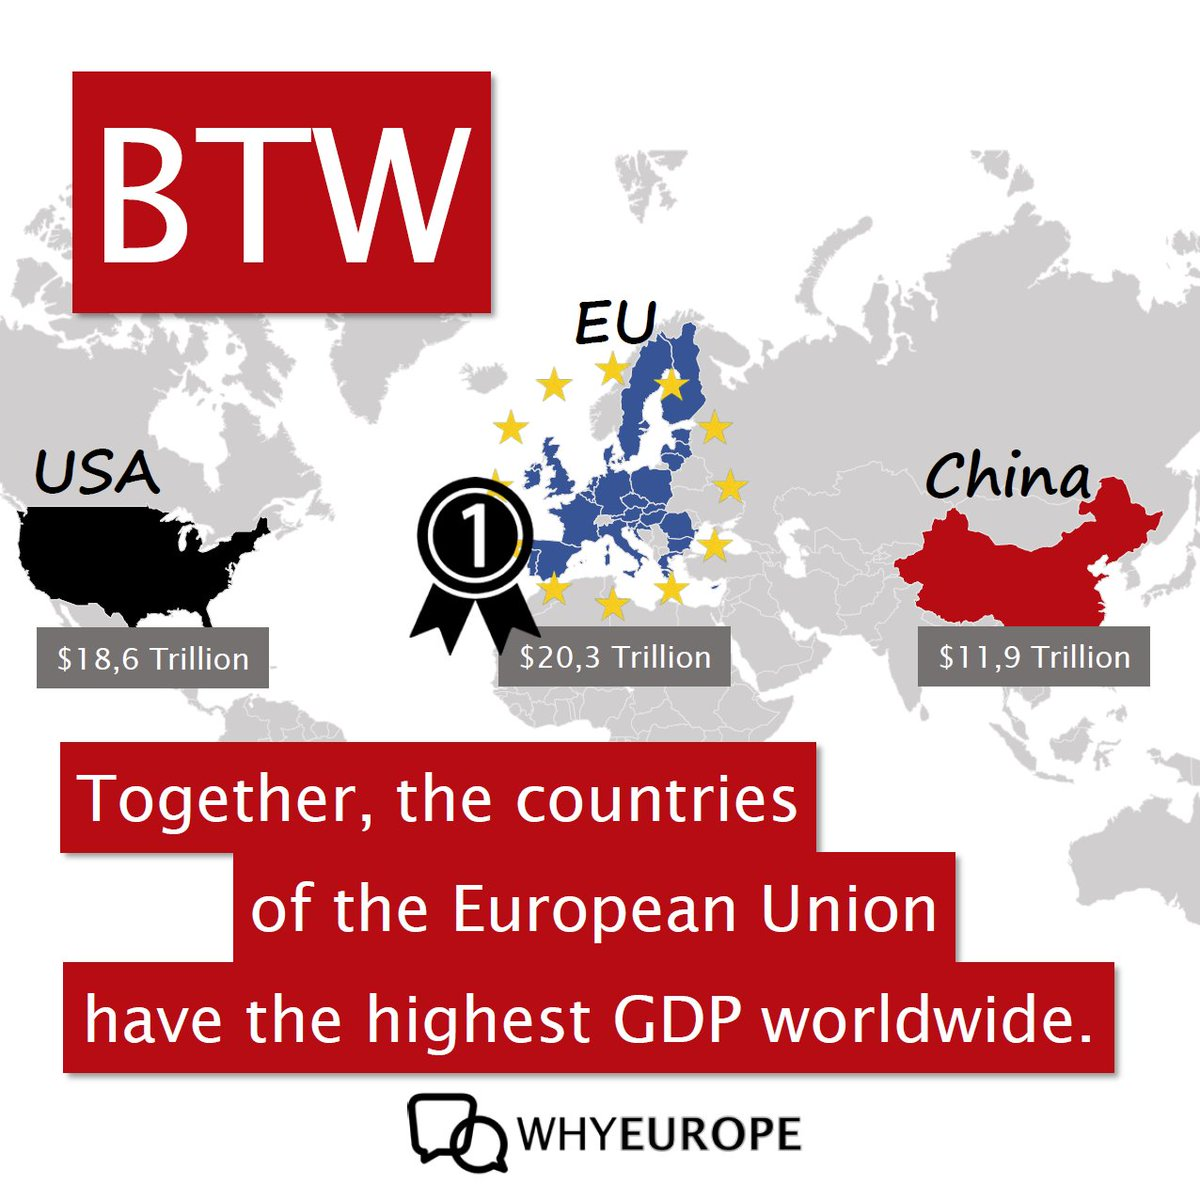 Together, the countries of the #EuropeanUnion have the highest GDP in 2016:  https://www. facebook.com/WhyEuropeORG/p hotos/a.1790392157846365.1073741827.1790357474516500/1953519034867009/?type=3&amp;theater &nbsp; …  #EU #economy #Brexit<br>http://pic.twitter.com/h1ZyLdV8S4